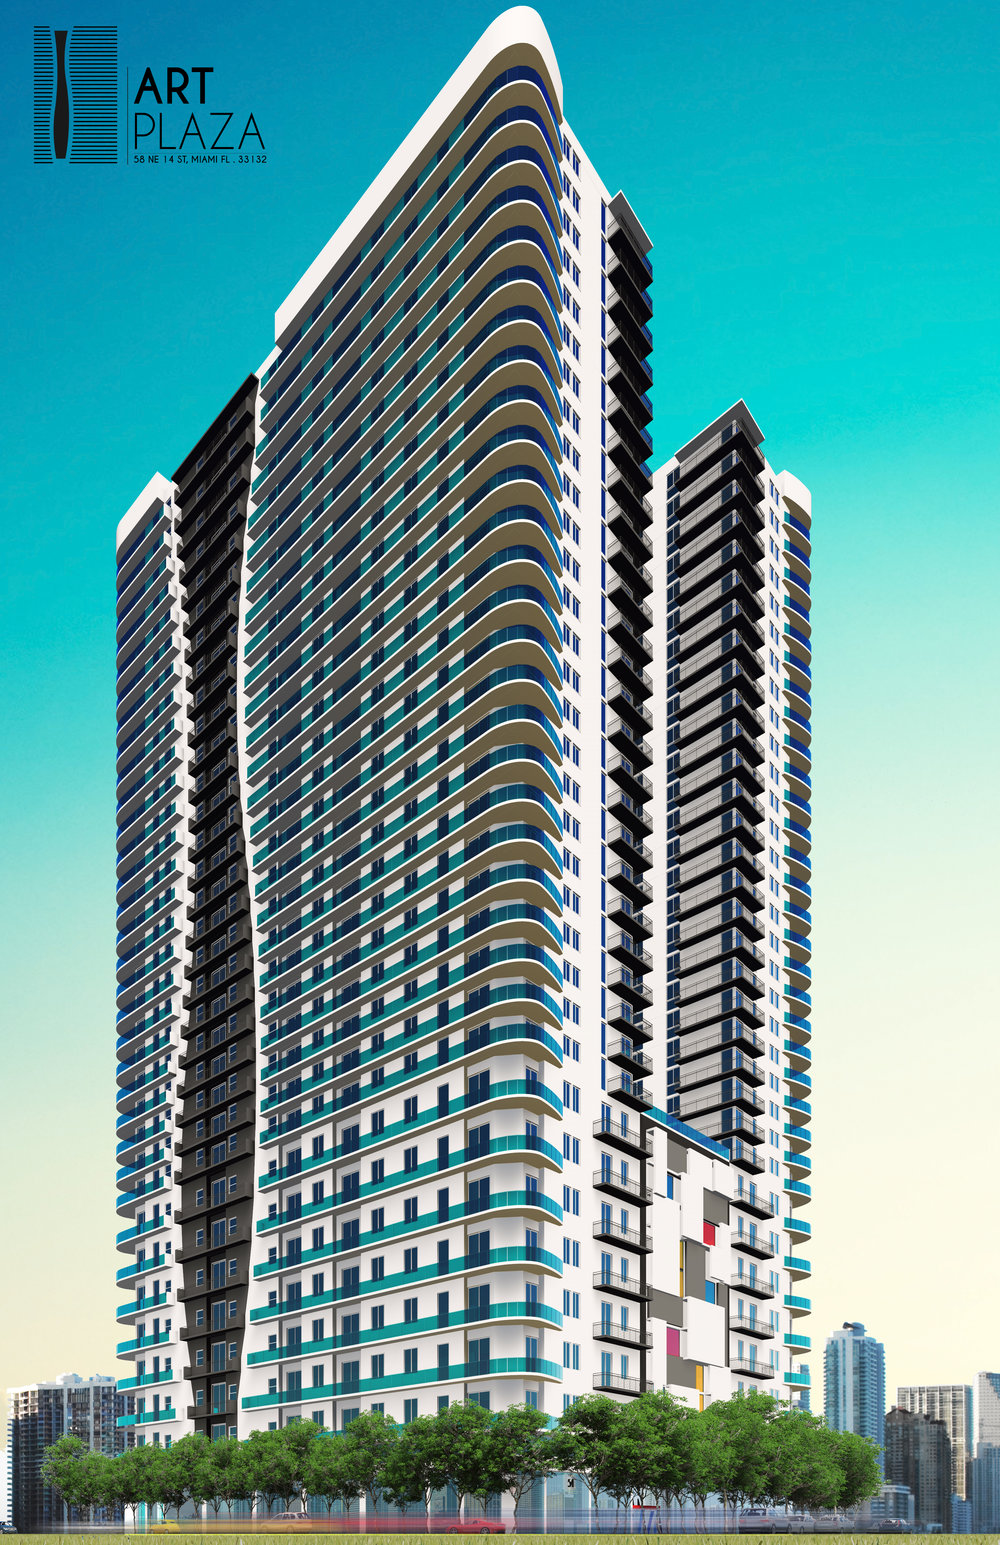 Melo Group Launches Pre-Leasing For Art Plaza Apartments In Downtown Miami